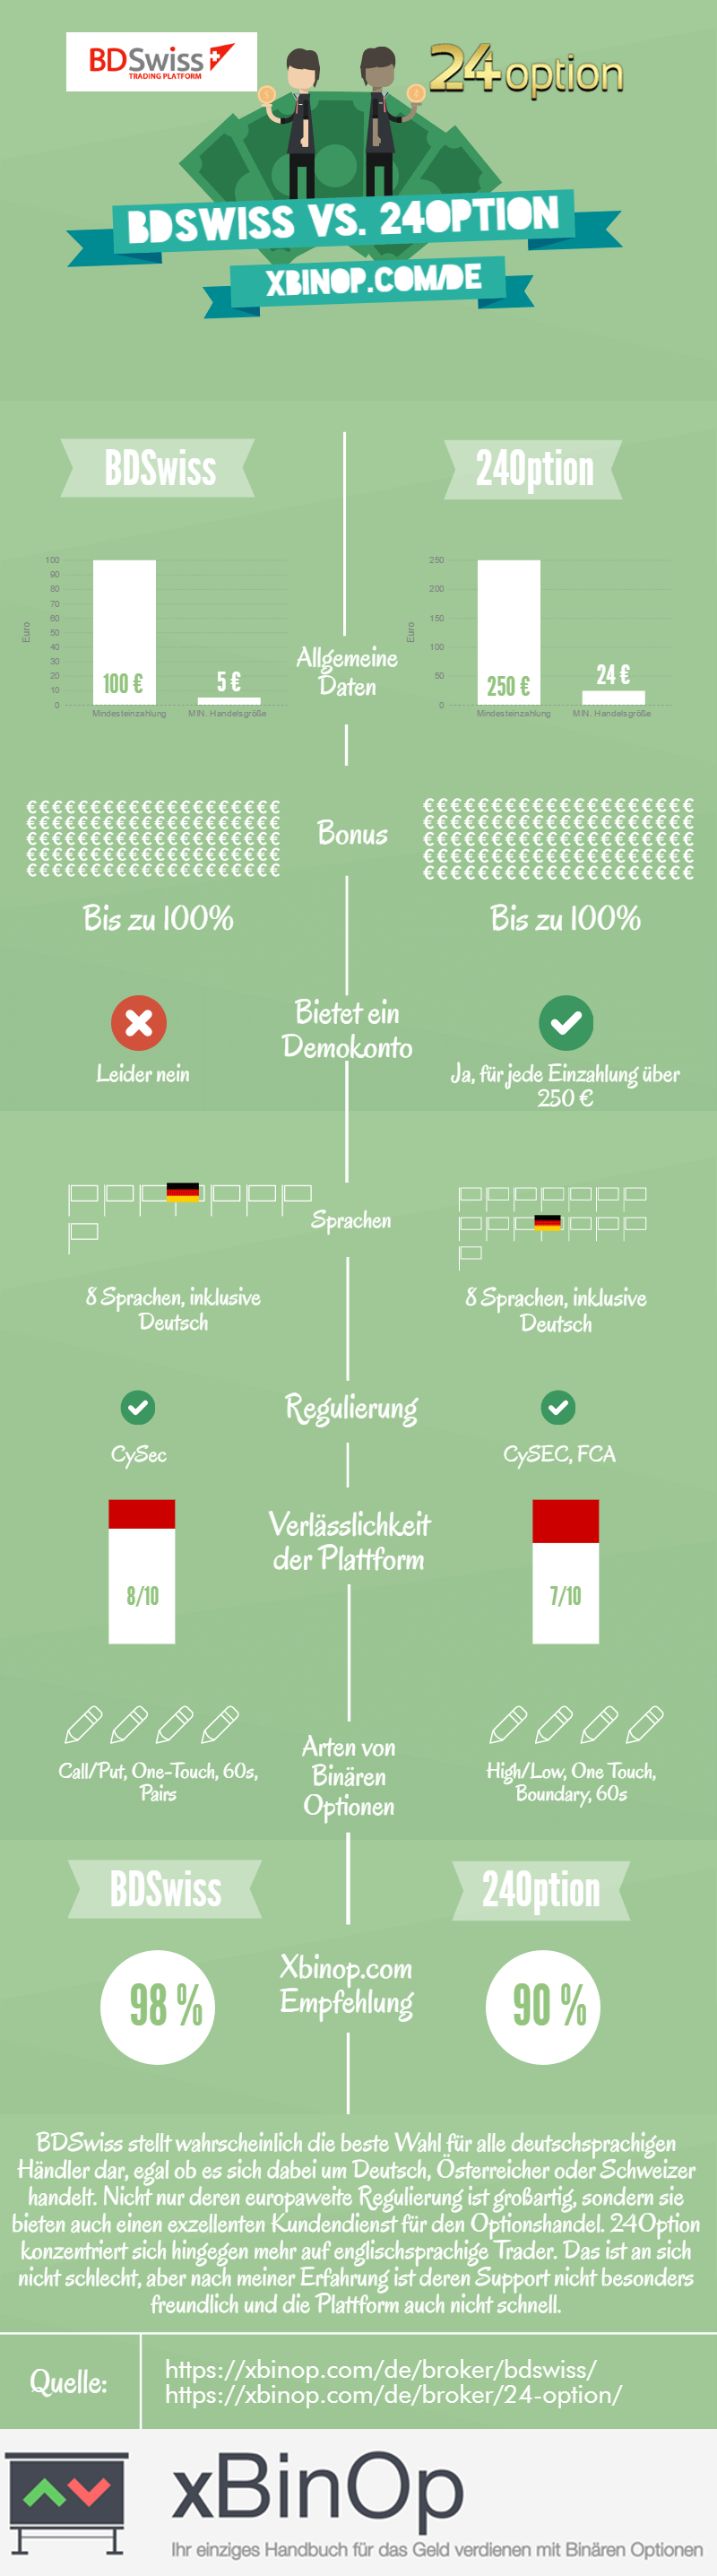 BDSwiss vs. 24Option